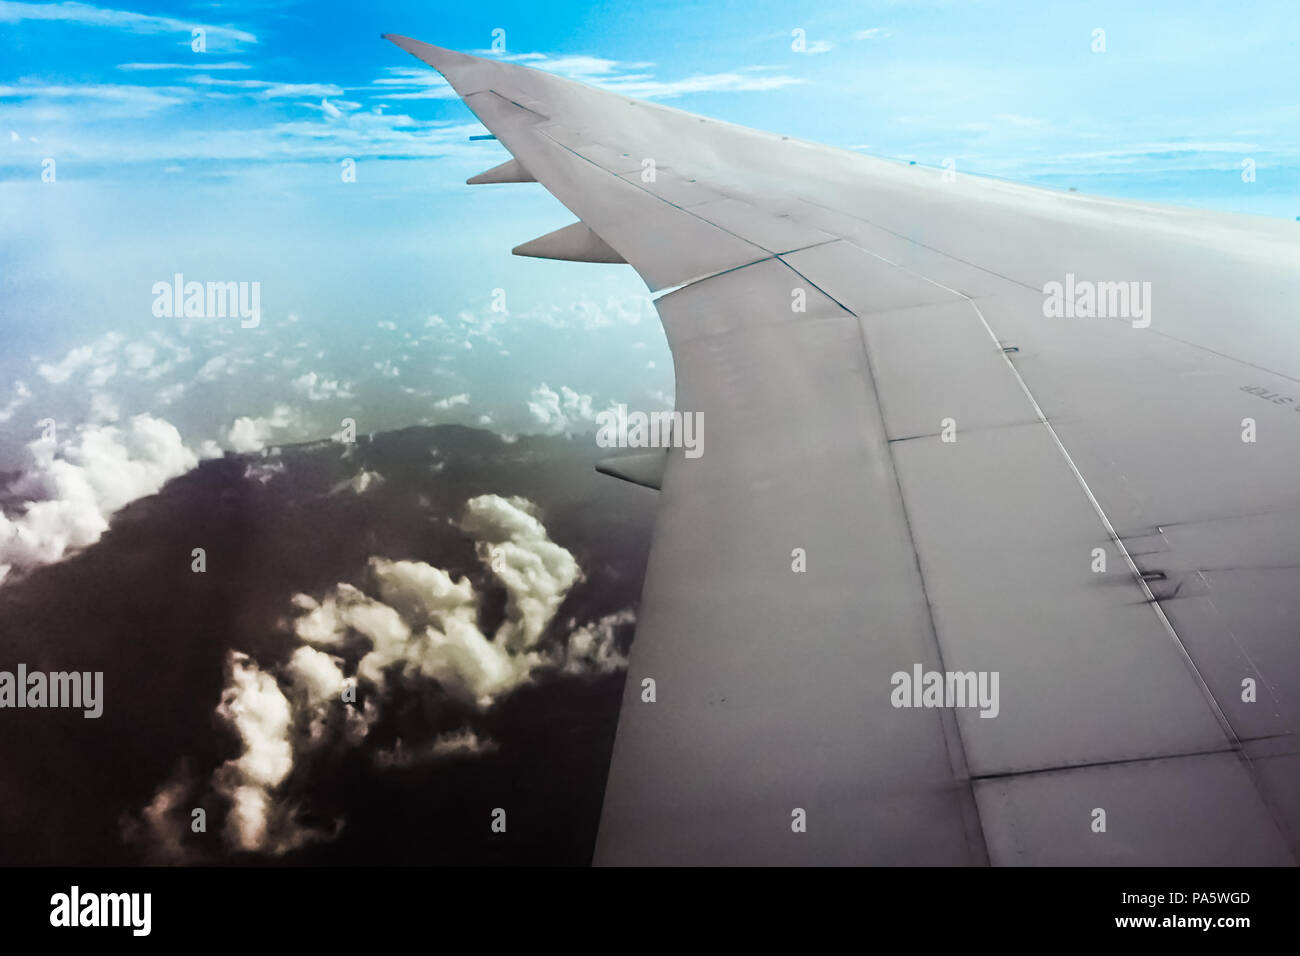 Commercial aircraft wing pointing in the blue sky evoke a wonderful feeling of space and depth. A fantastic view of the sky when looking through windo - Stock Image